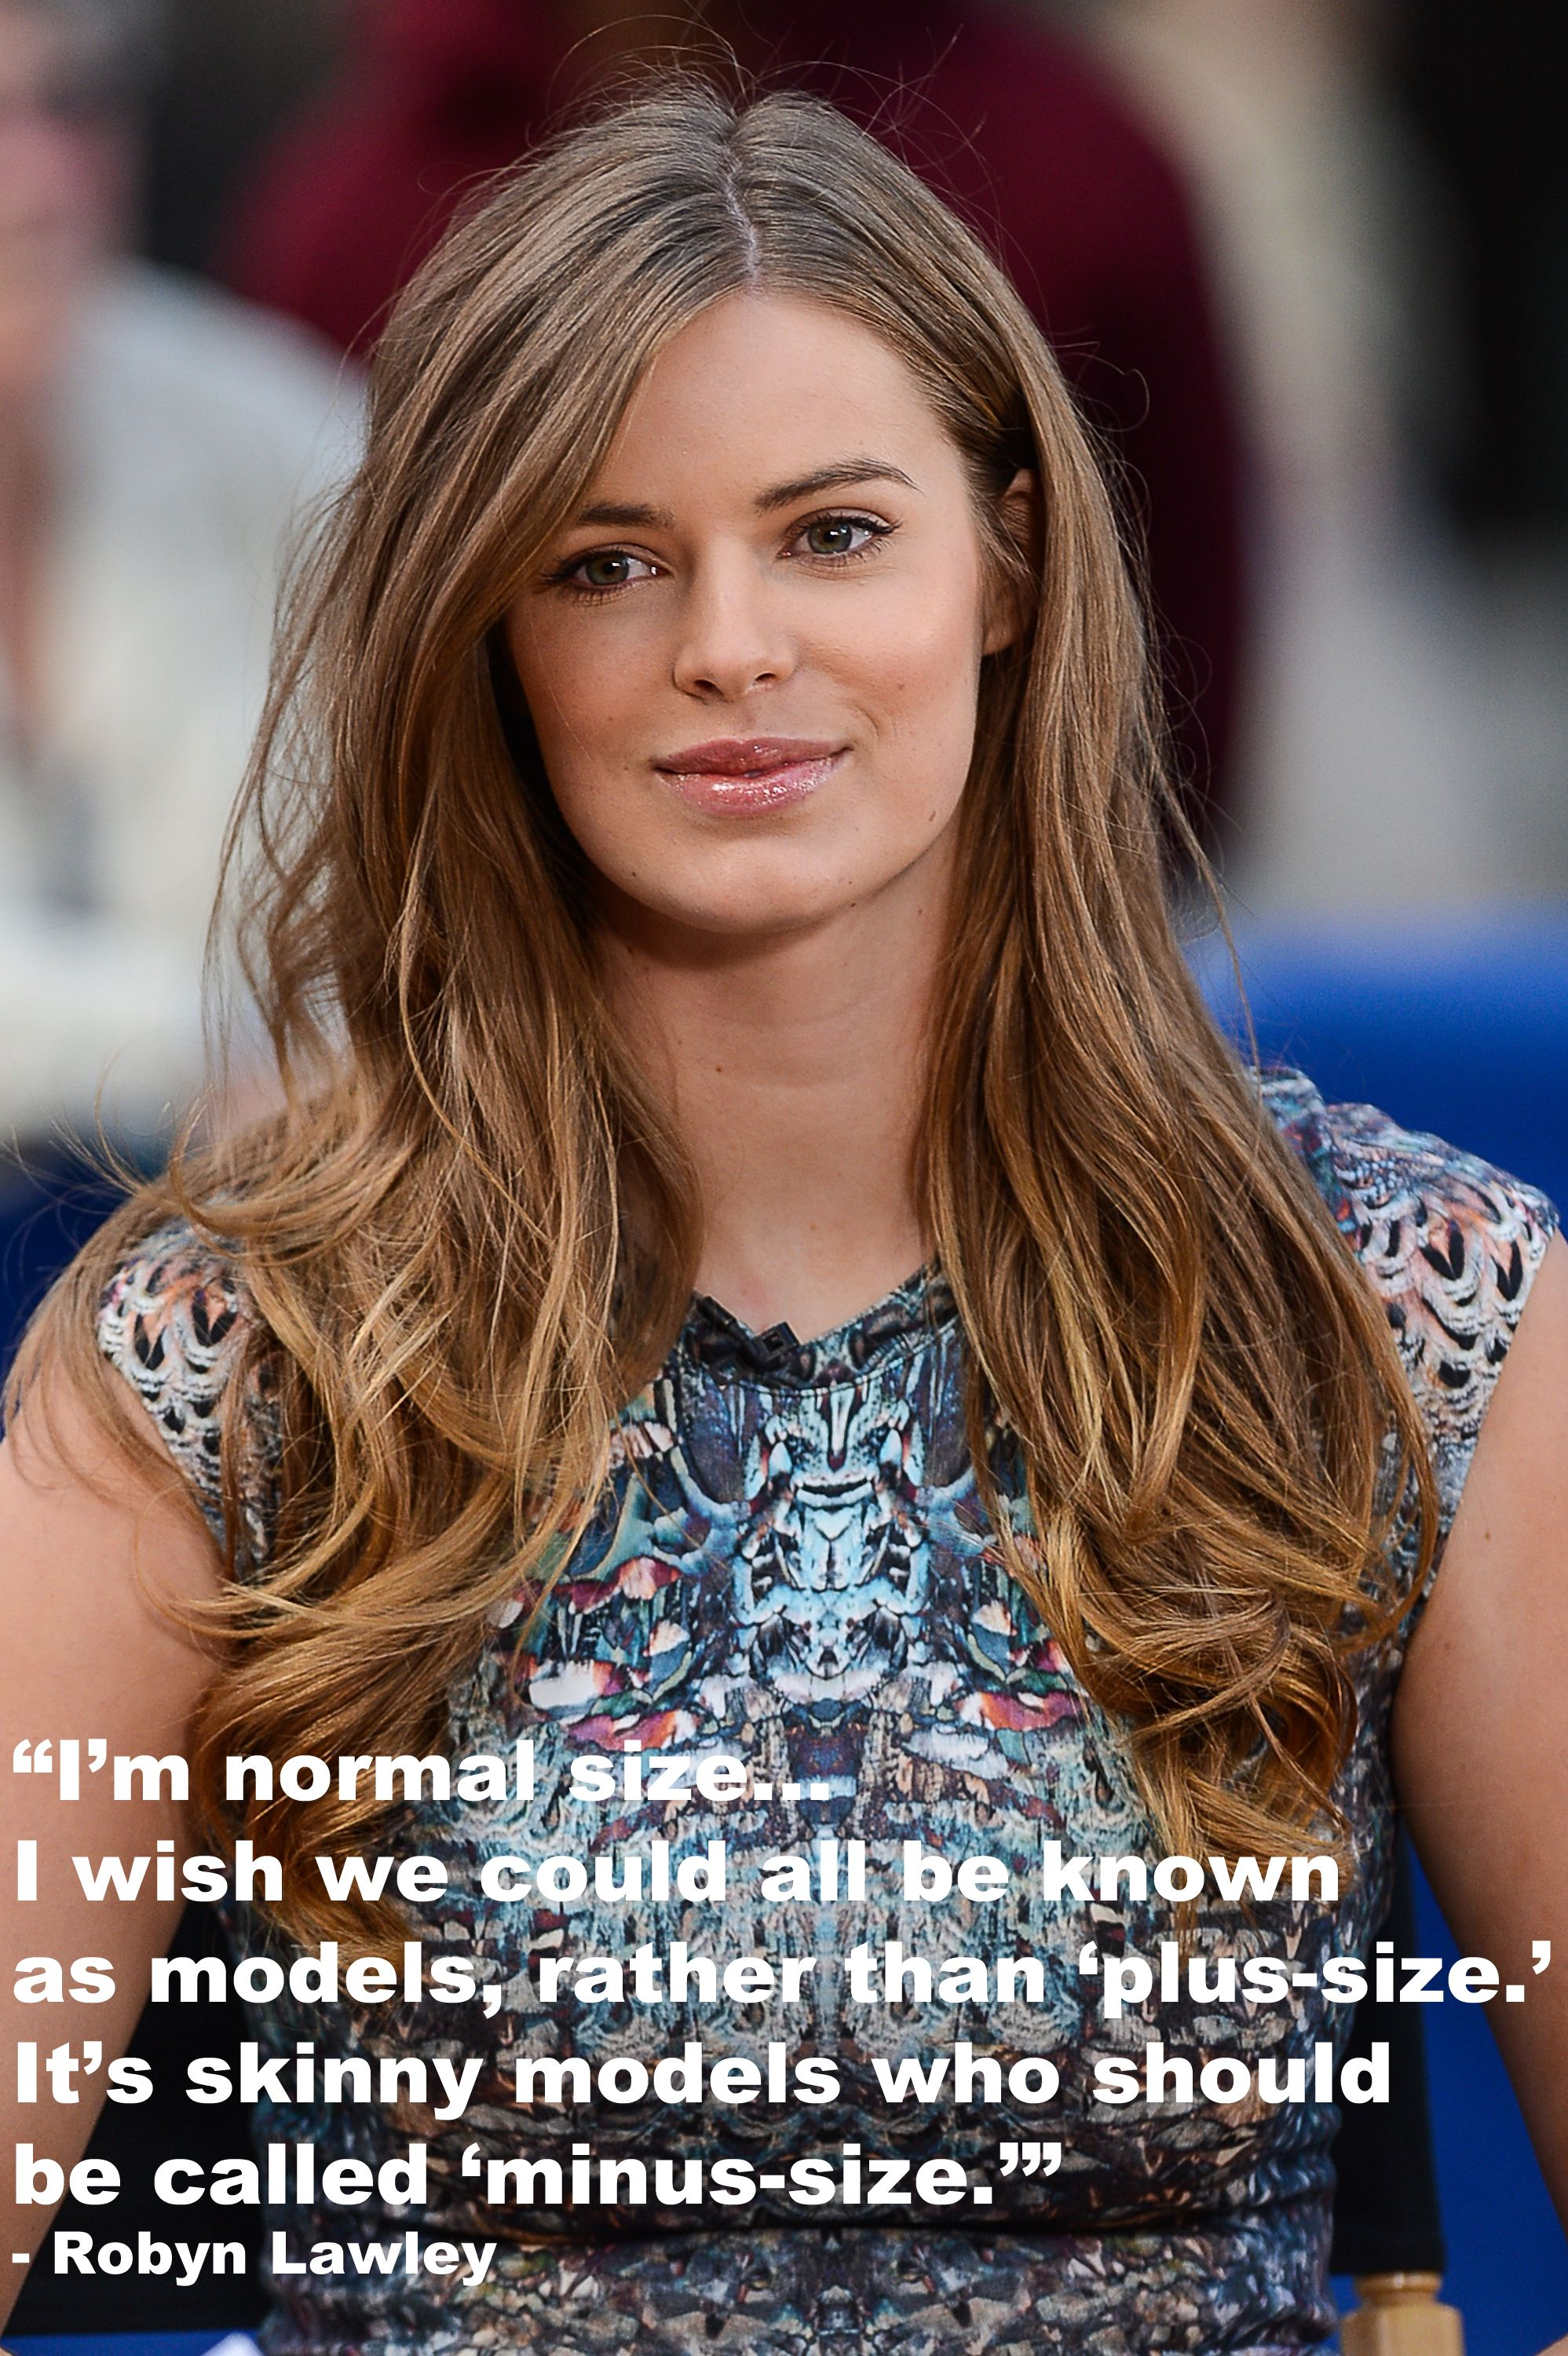 Robyn Lawley always tells it like it is. Model quotes